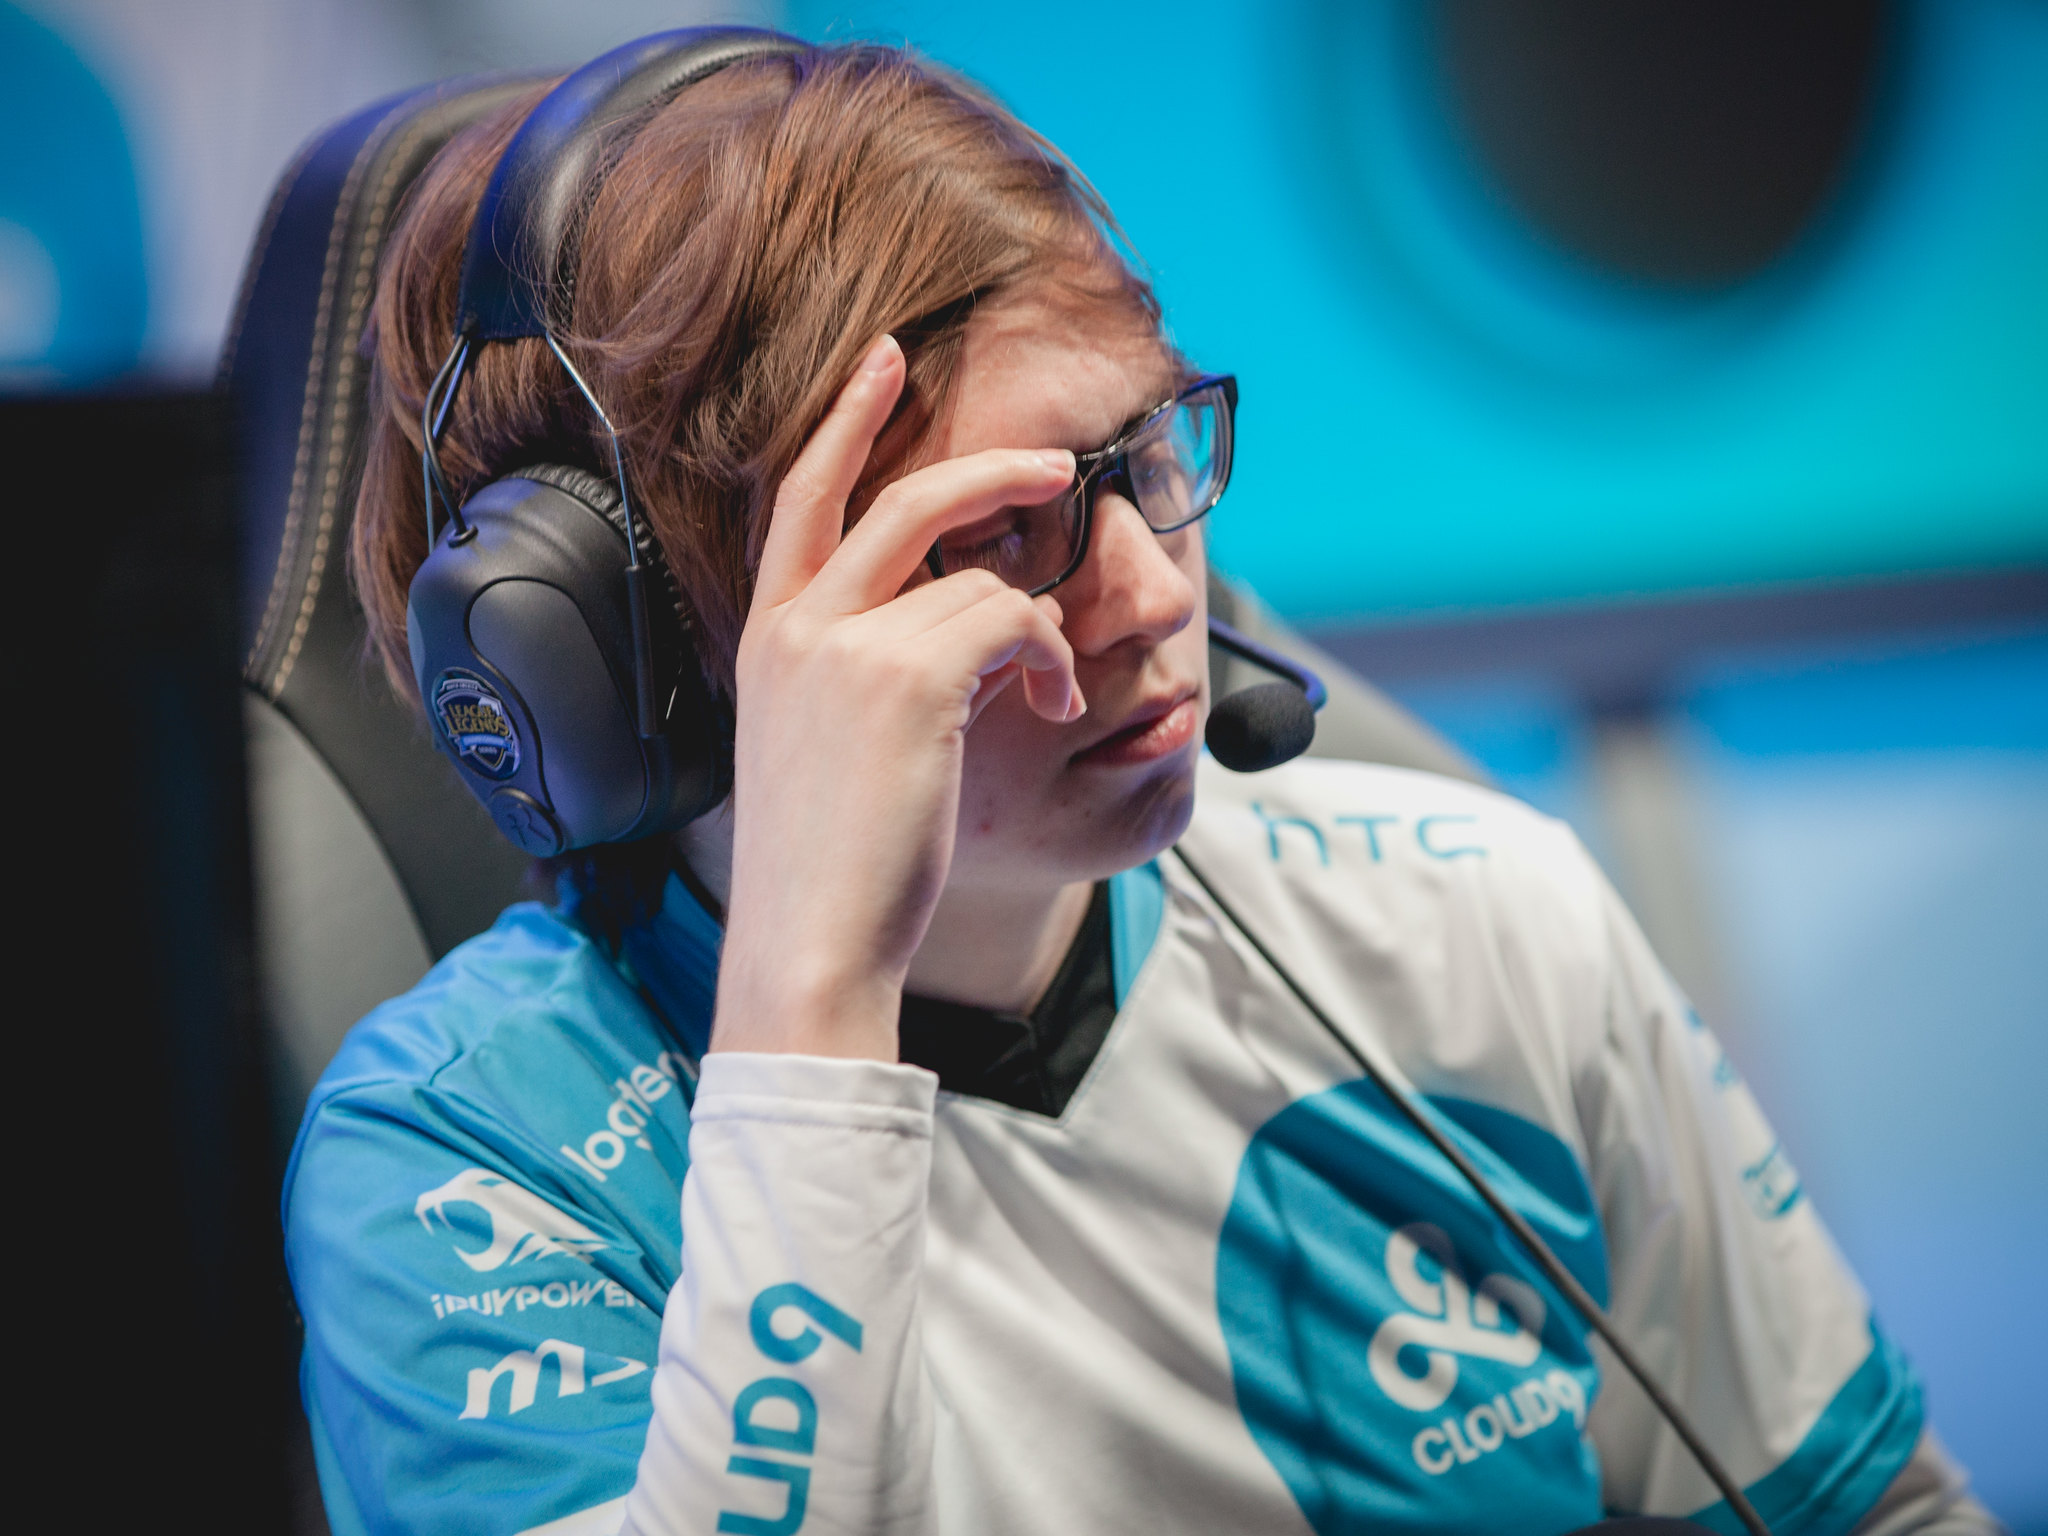 Sneaky was dropped by Cloud9 in 2019 after 339 appearances and two titles with the NA org.